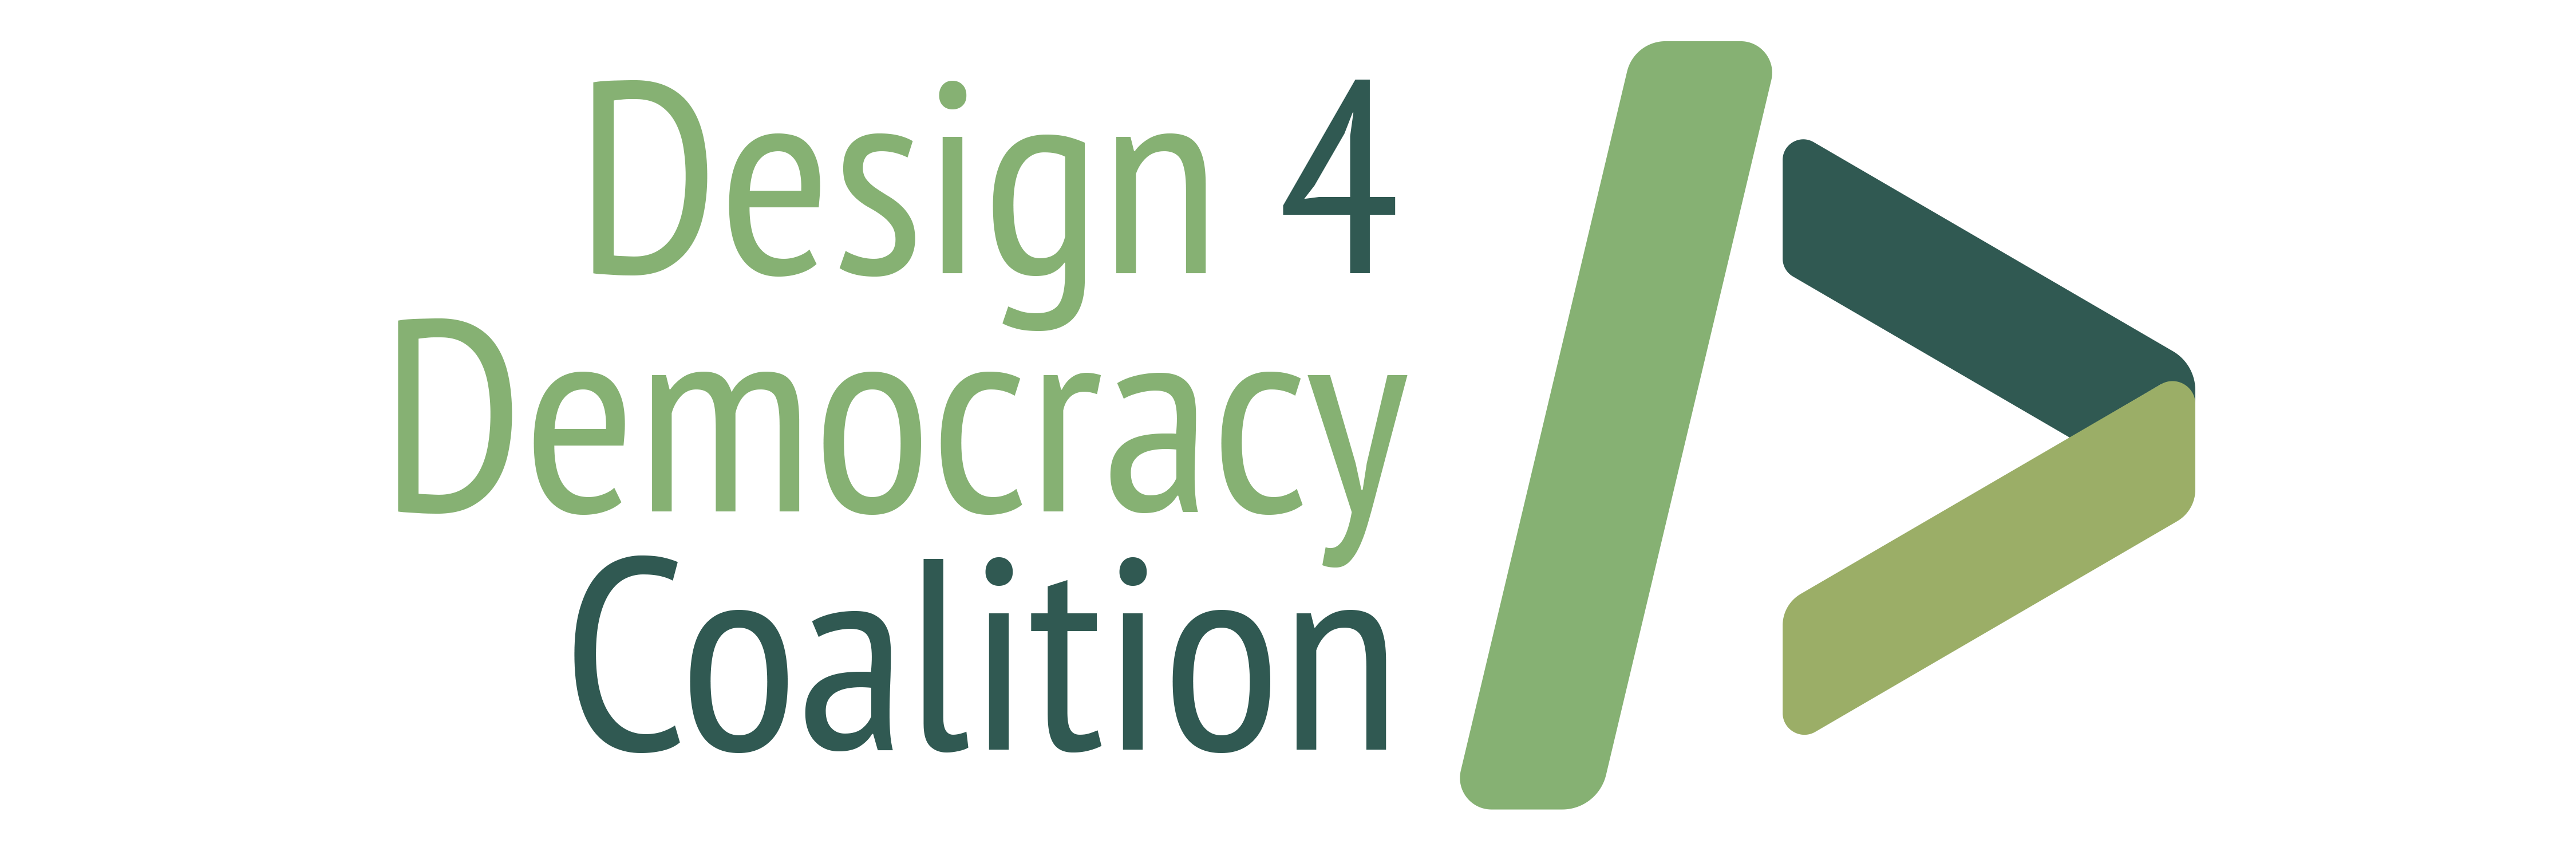 Design 4 Democracy Coalition